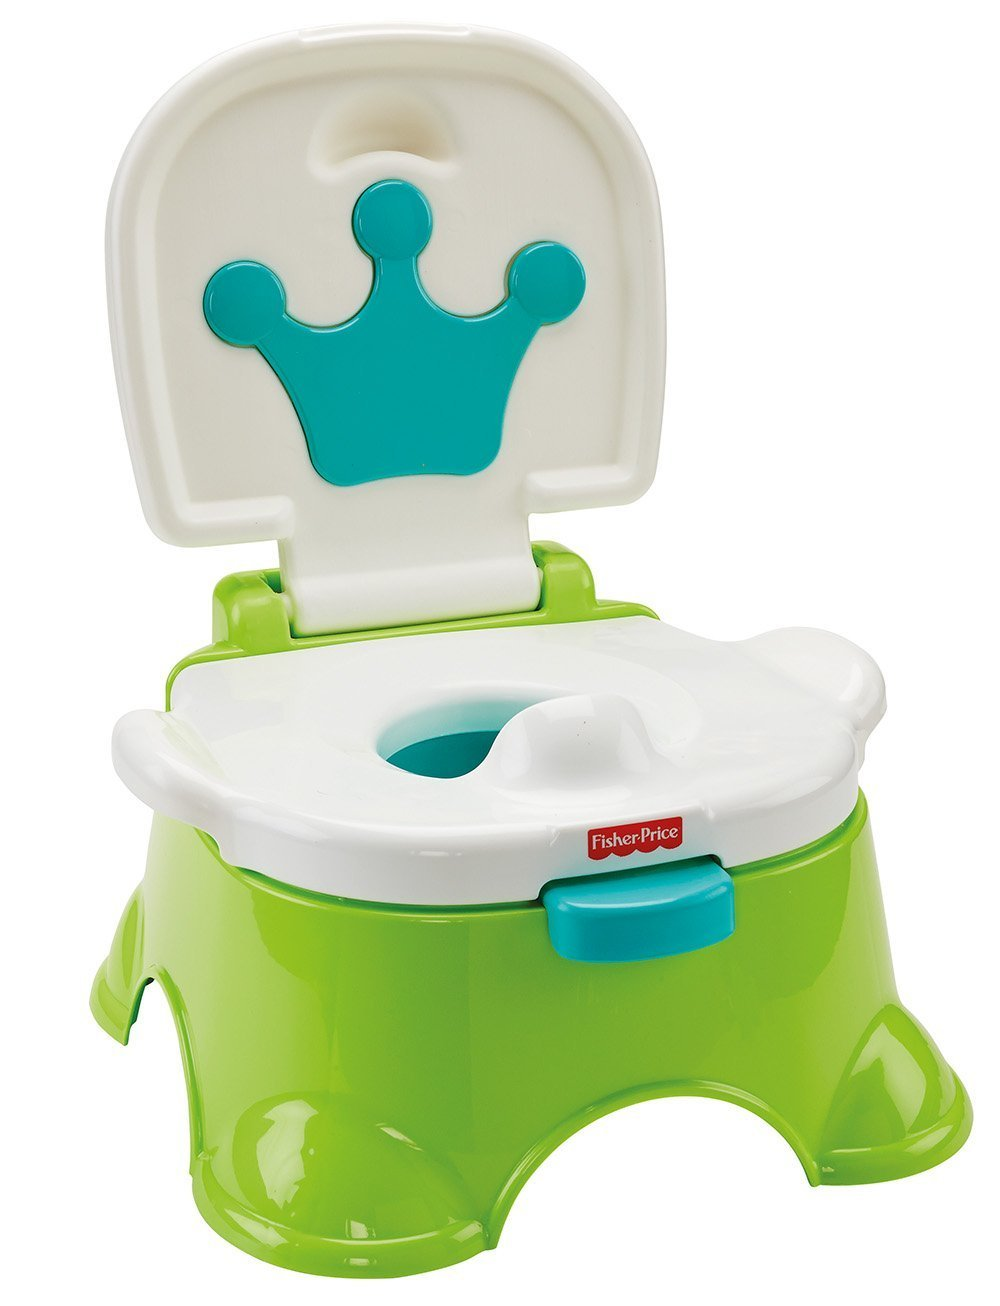 Fisher Price Royal Potty 3 in 1 DLT00 Bērnu podiņš muzikālais